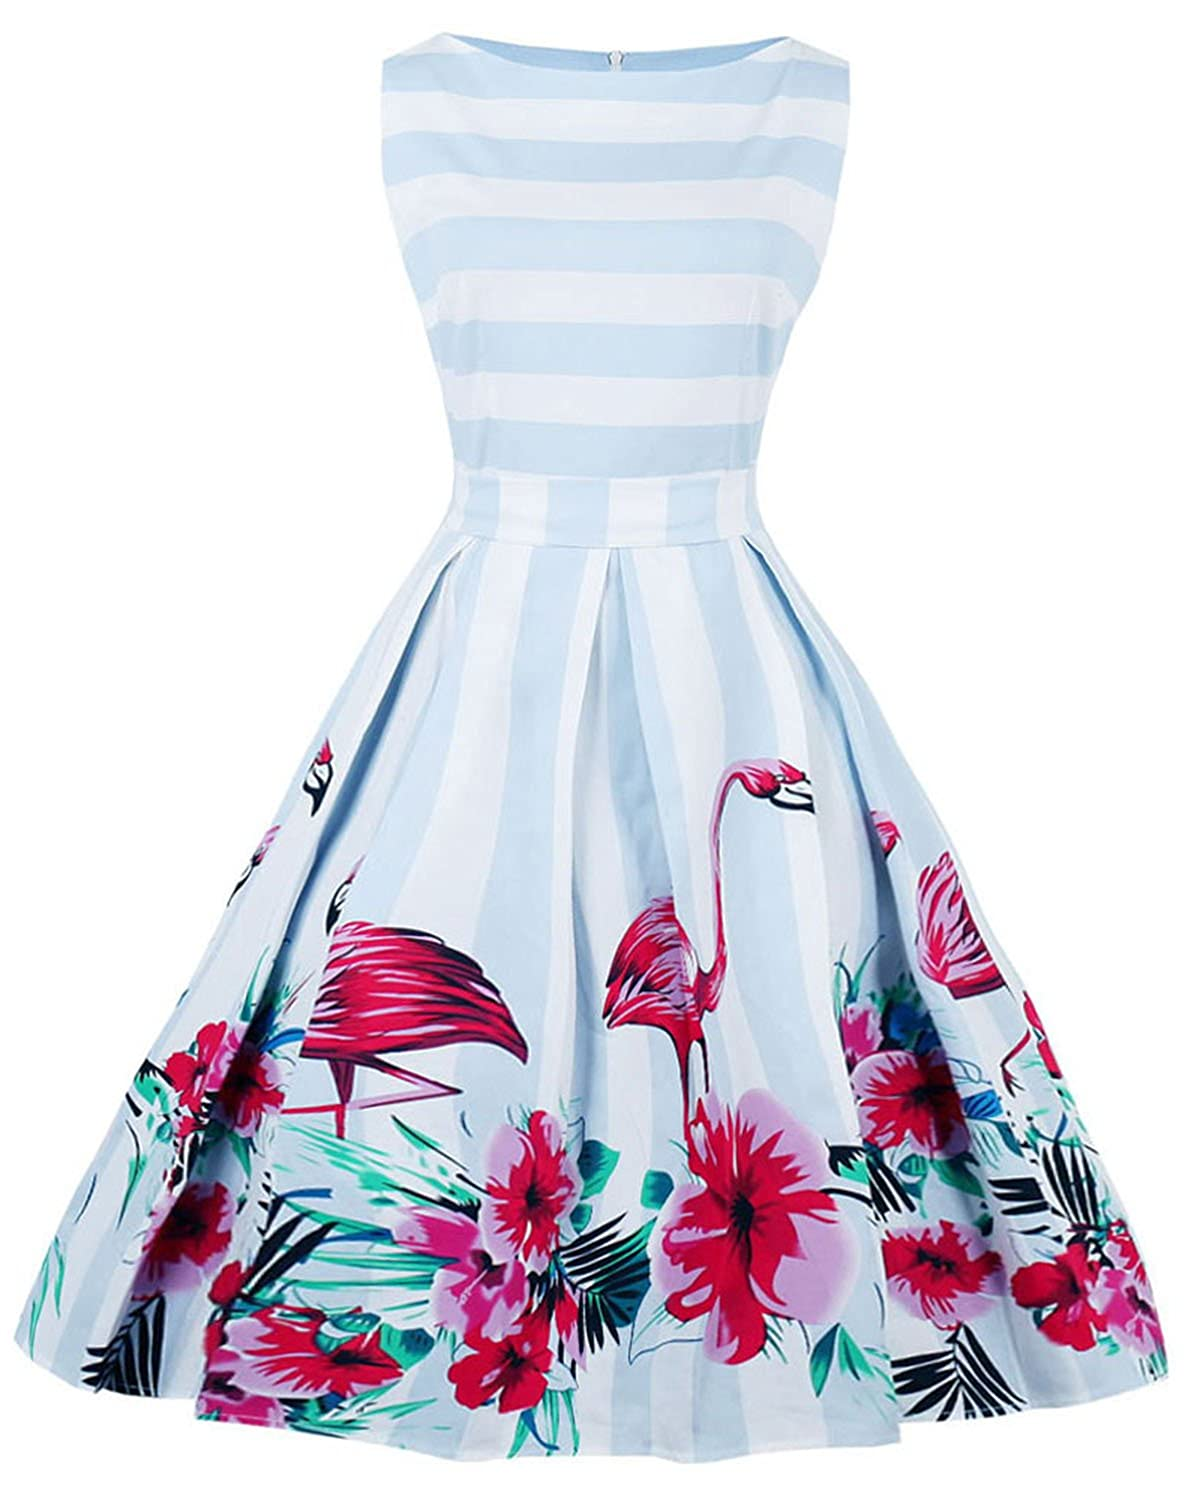 51d3a31c076 ZAFUL Women s Elegant Plus Size Summer Dresses 1950s Vintage Floral Print  Sleeveless Rockabilly Cocktail Party Swing Dress-Blue 1-2XL  Amazon.co.uk   ...